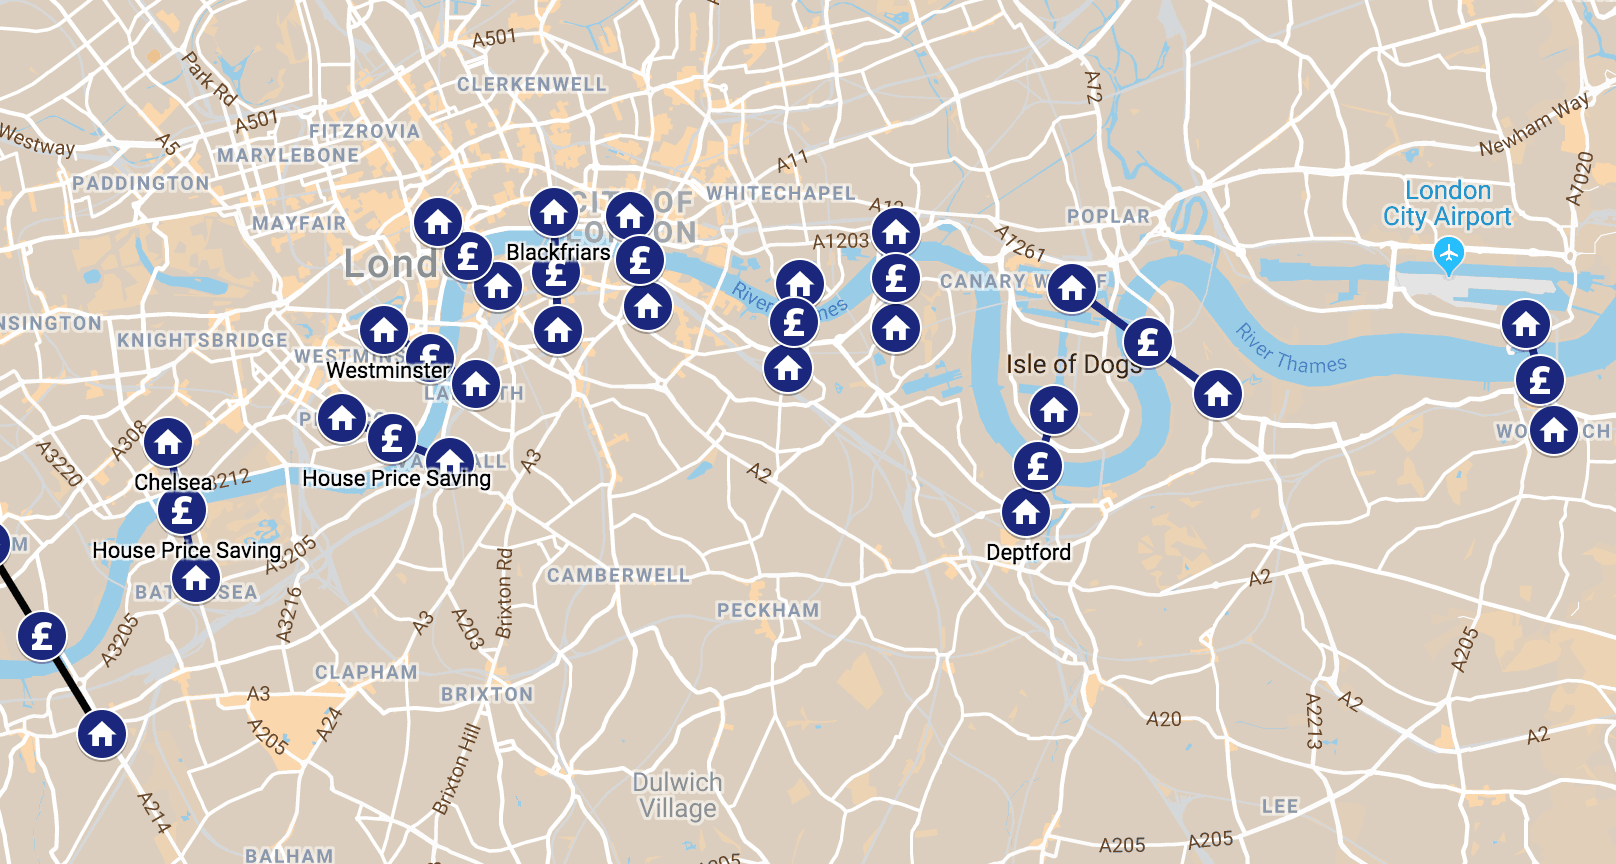 Mapped: Where to save money on London house prices along the River Thames